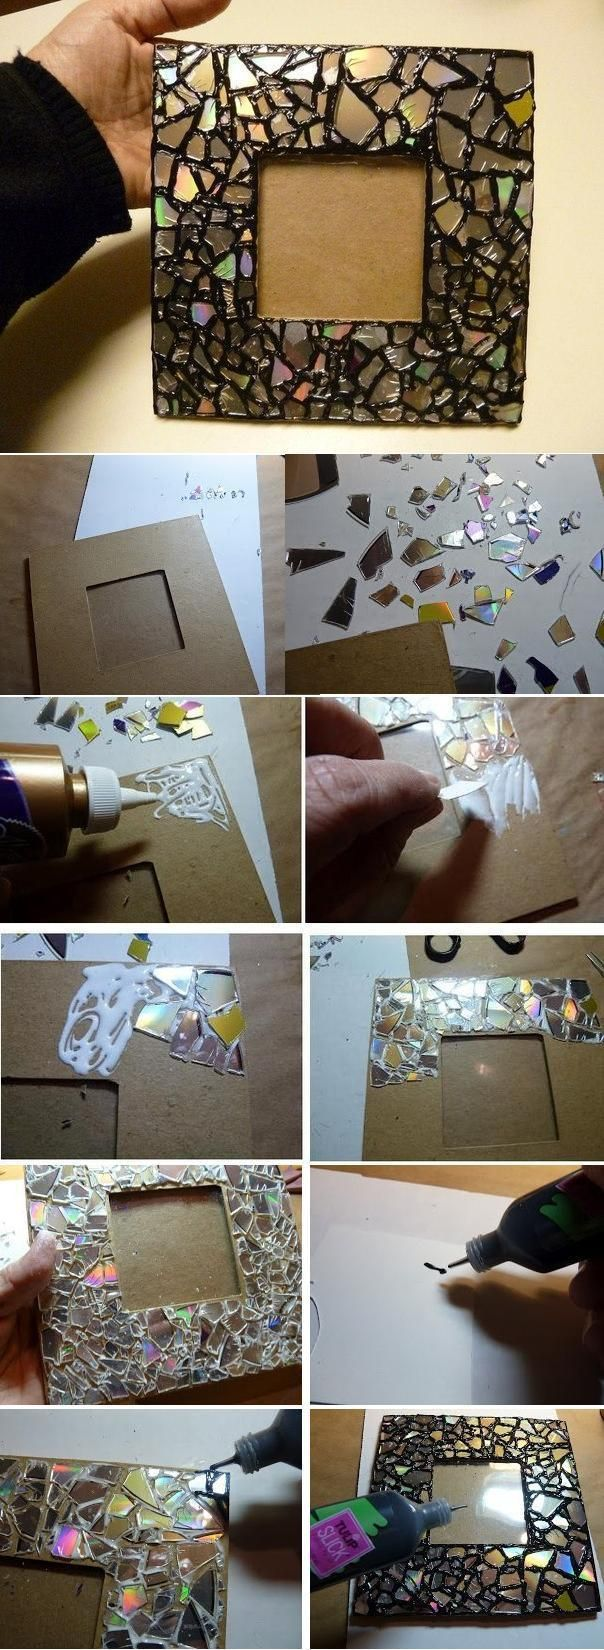 DIY Art & Crafts : DIY old cd mosaic mirror frame